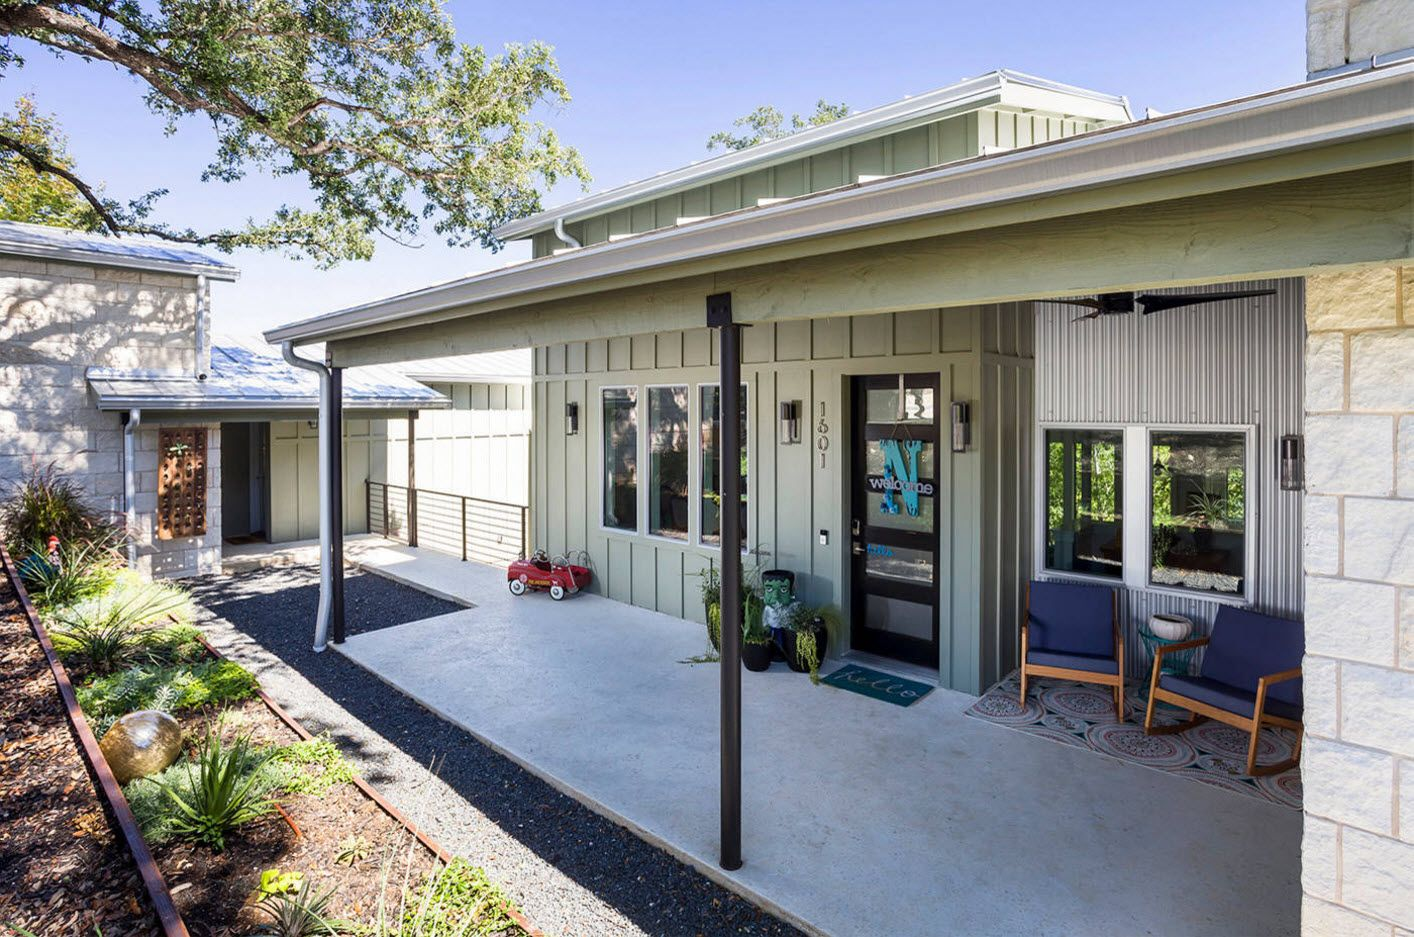 Concreted porch of the modern private cottage with the canopy over the entrance